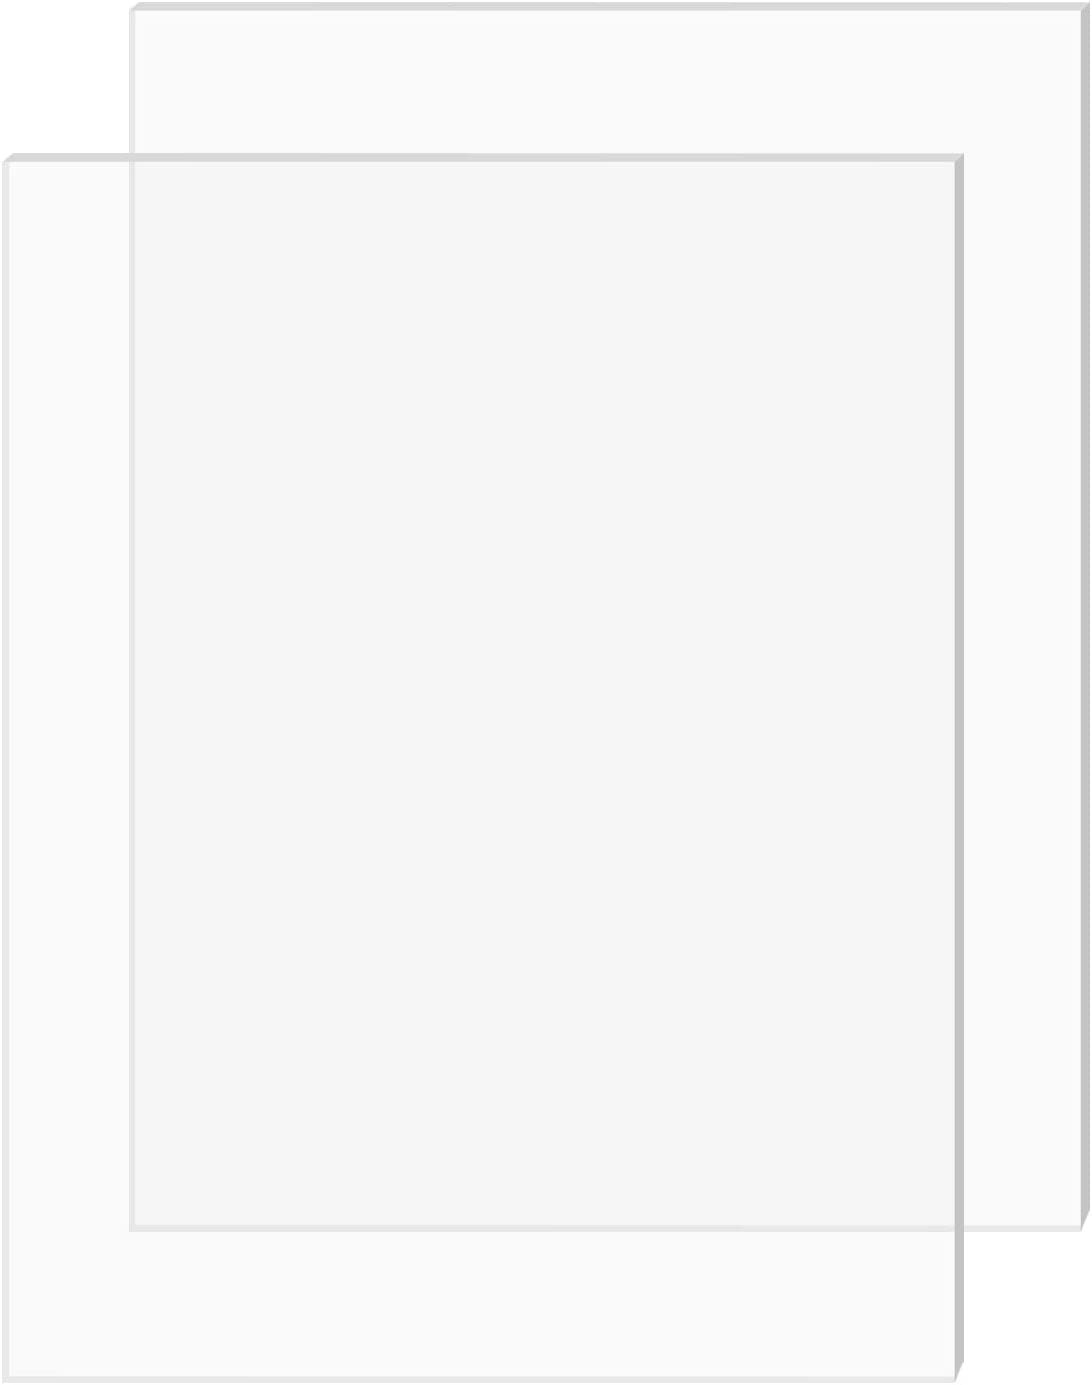 "SimbaLux Acrylic Sheet Clear Cast Plexiglass 5"" x 7"" 0.08"" Thick (2mm) Pack of 2 Transparent Plastic Plexi Glass Board with Protective Paper for Photo Frame Replacement, DIY Display Projects, Craft"